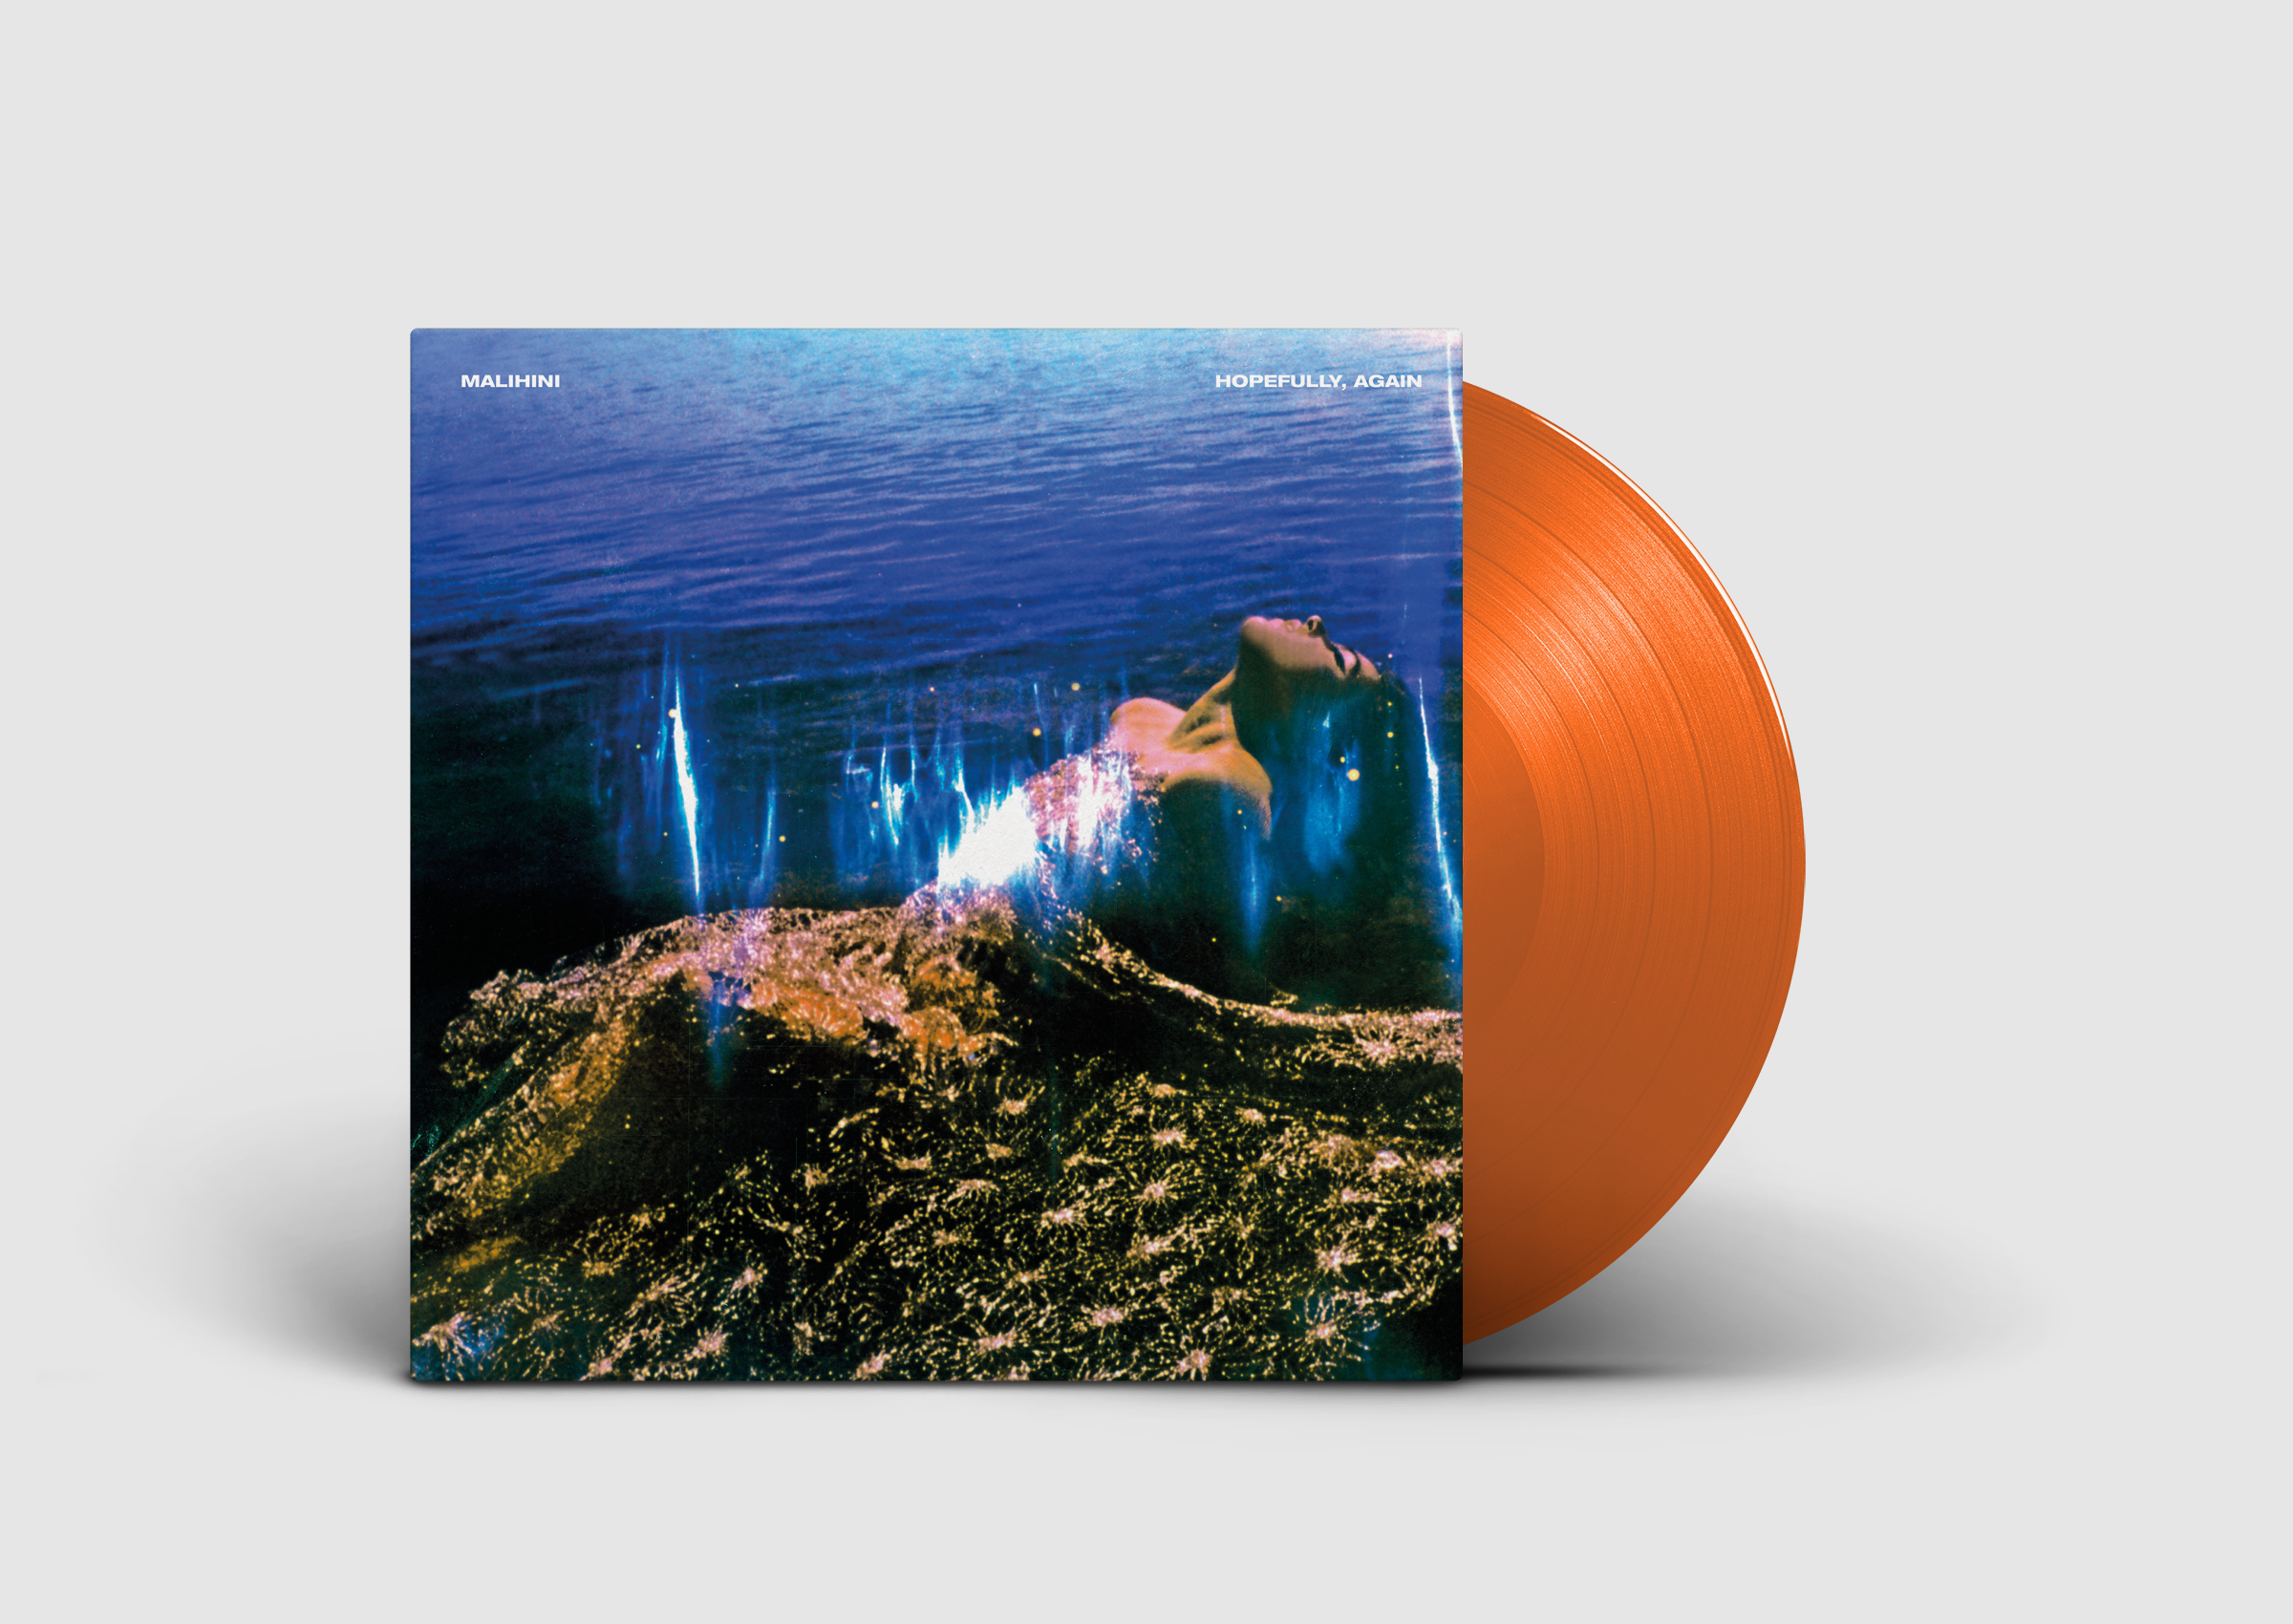 'Hopefully, Again' signed orange vinyl (includes instant download of title track) - malihini